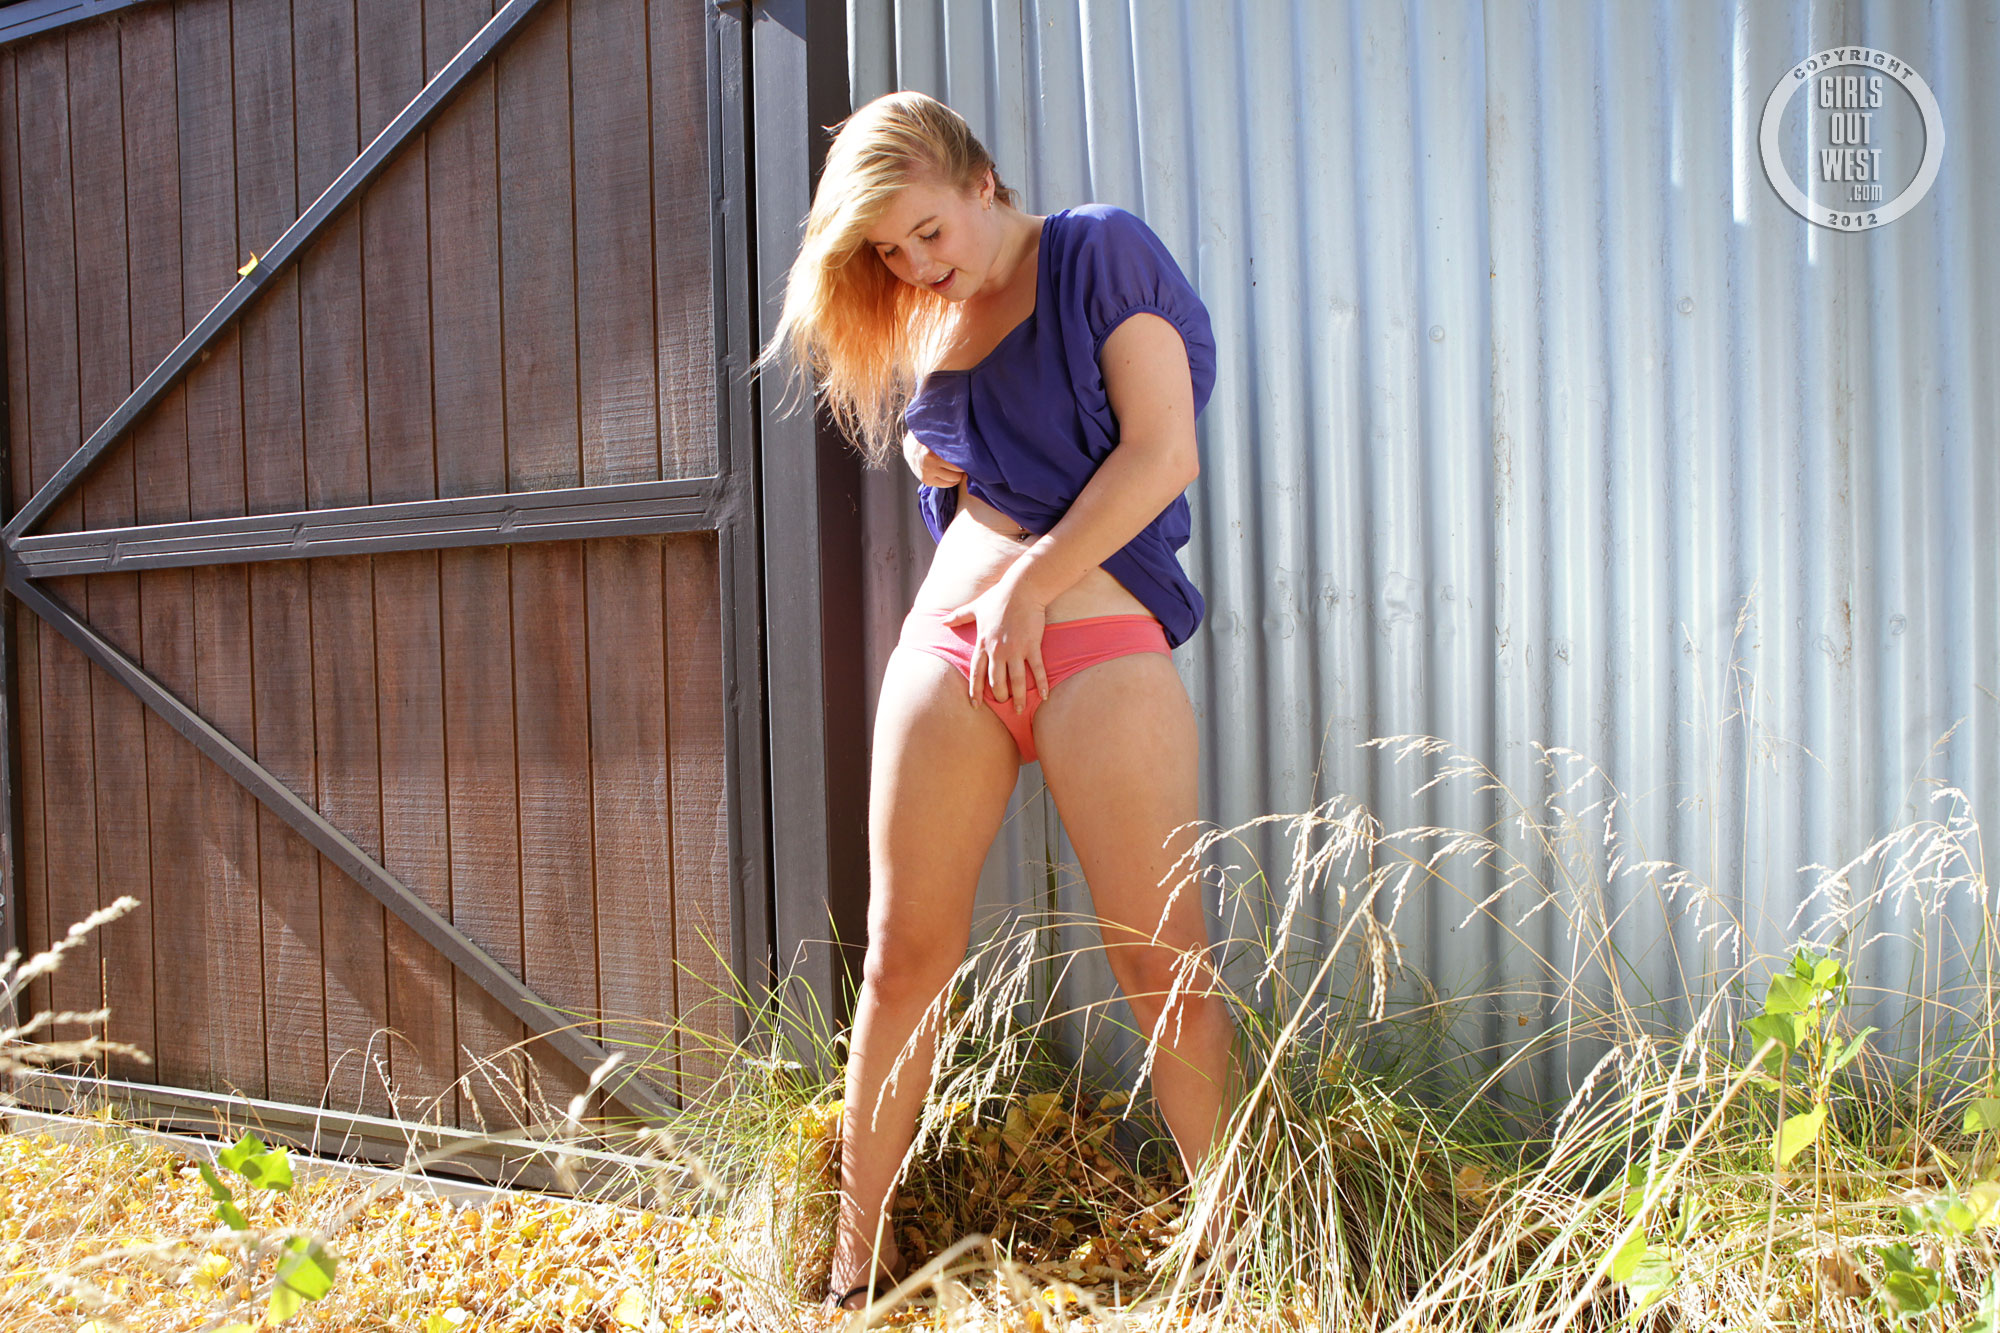 Tightbodied girl buzzes out another